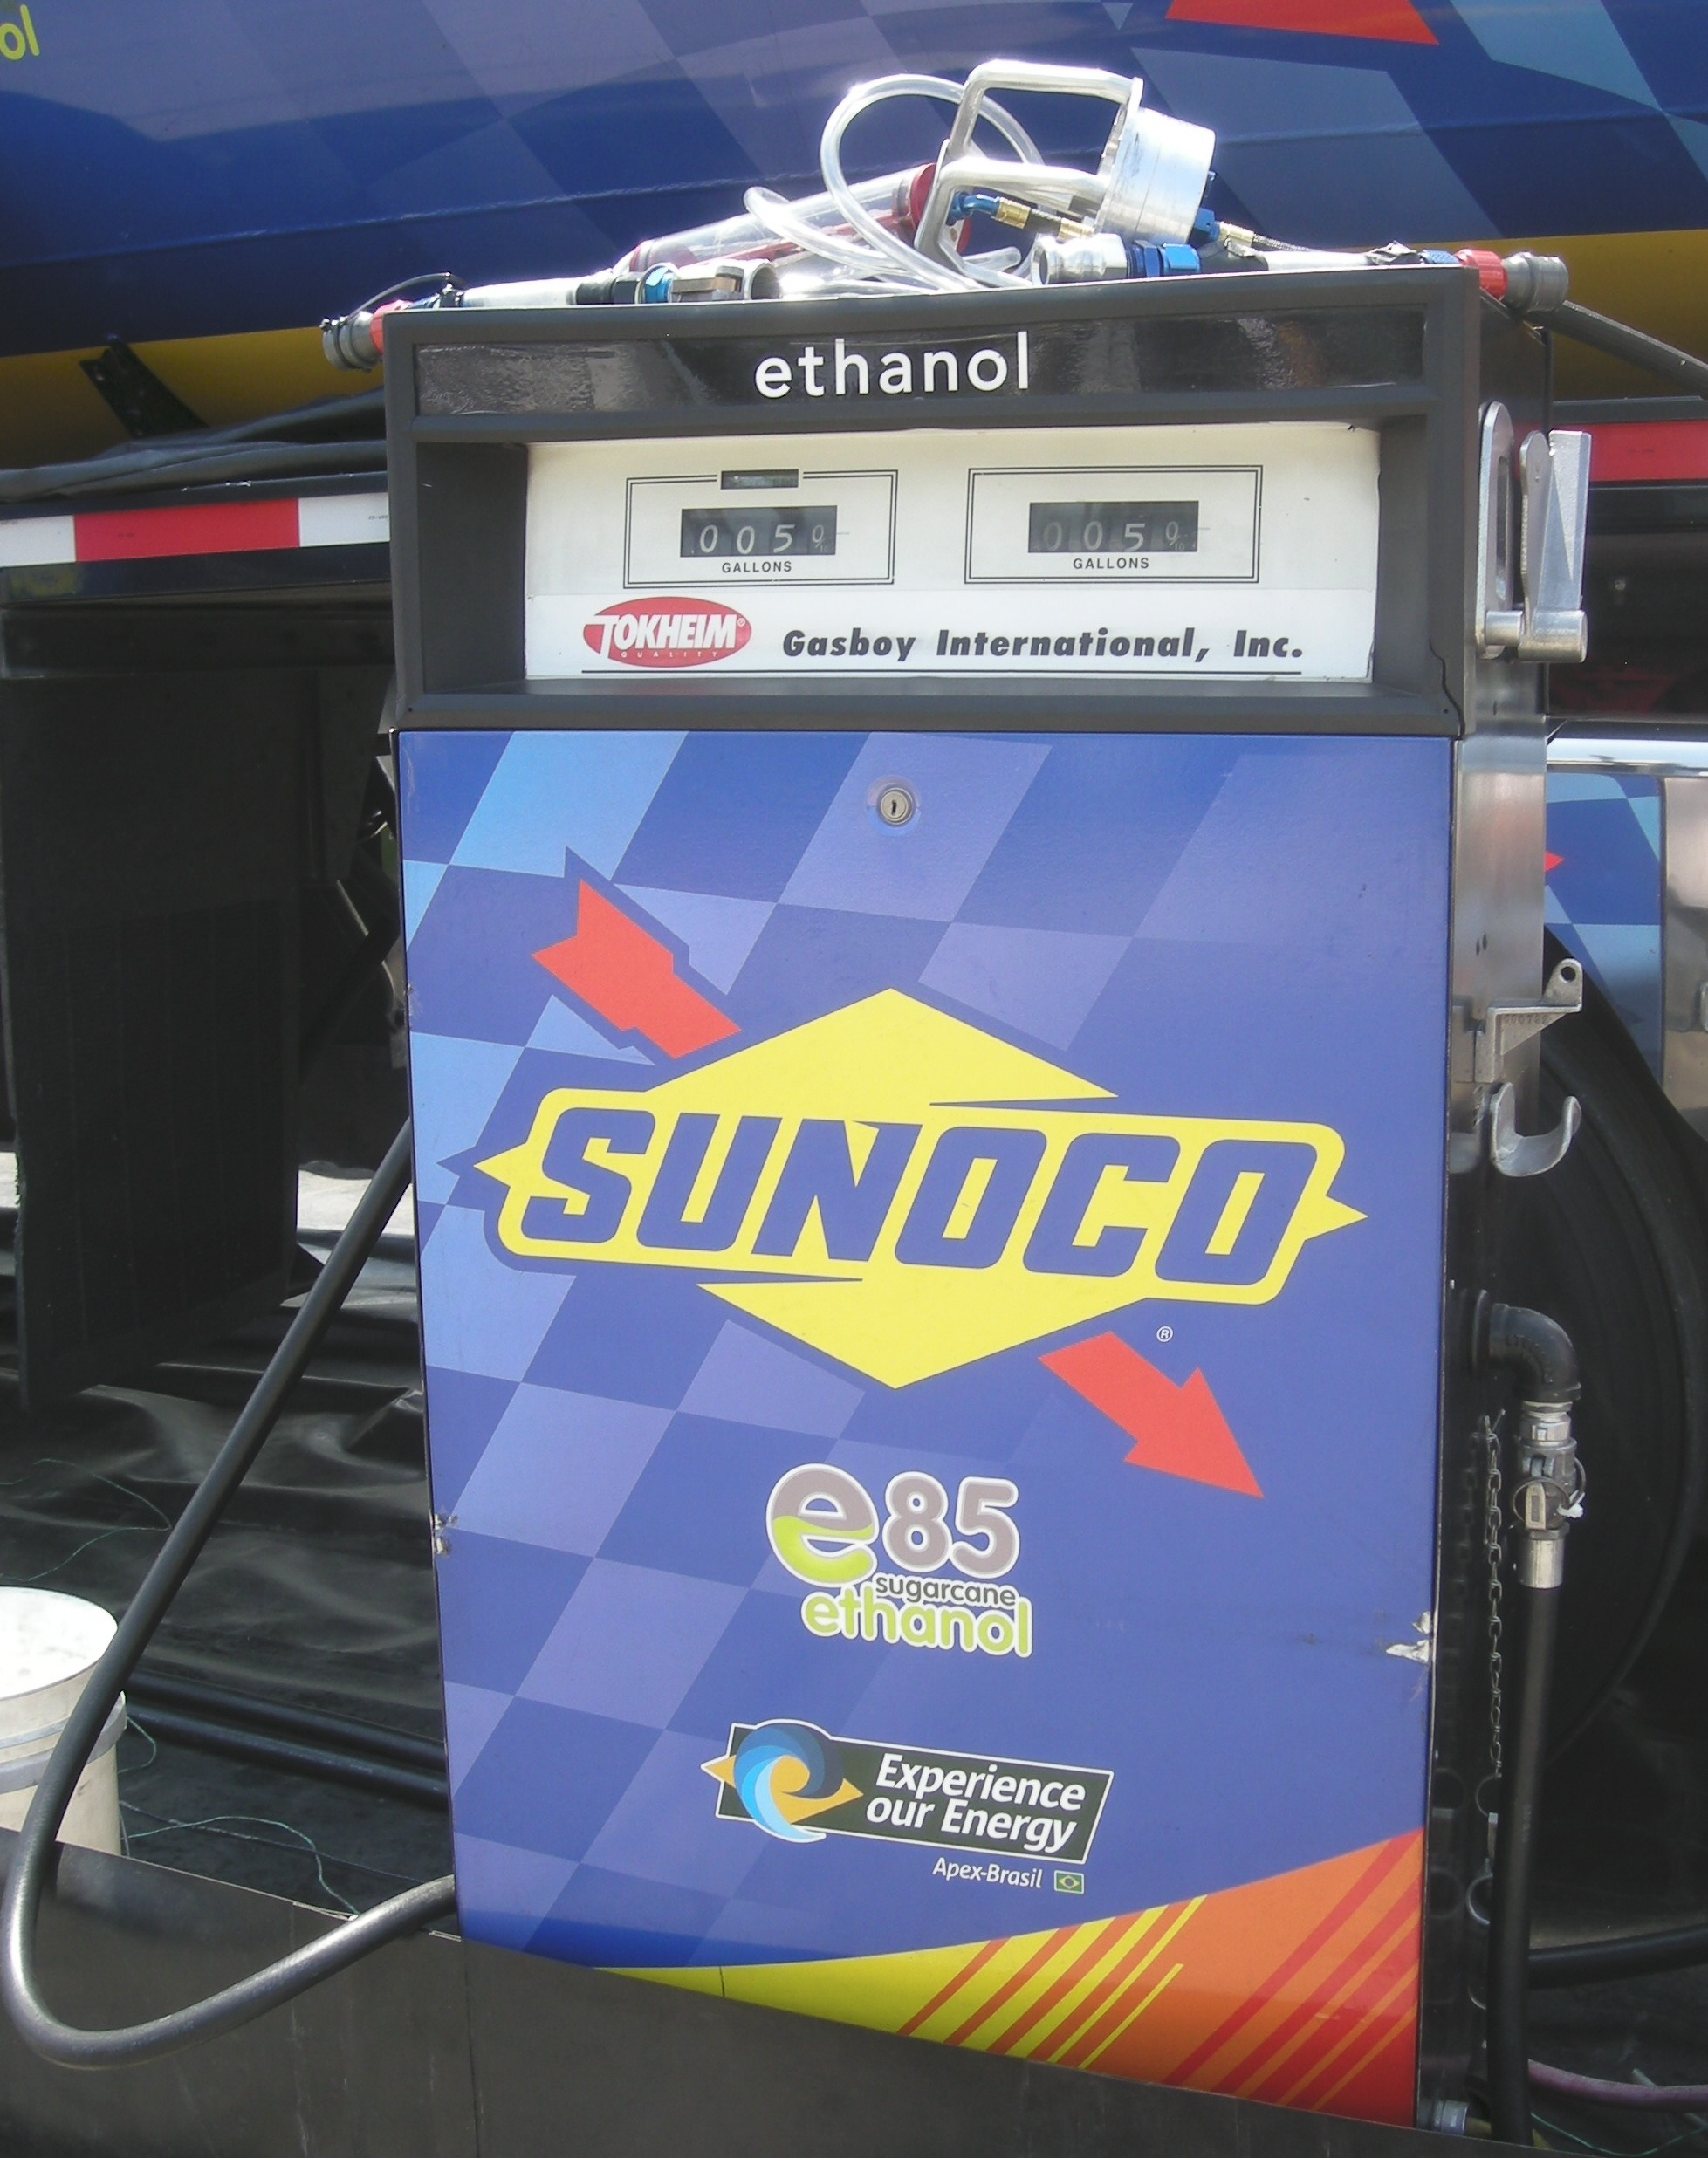 IndyCar switched to E85, becoming more relevant with fuels available to the general public.